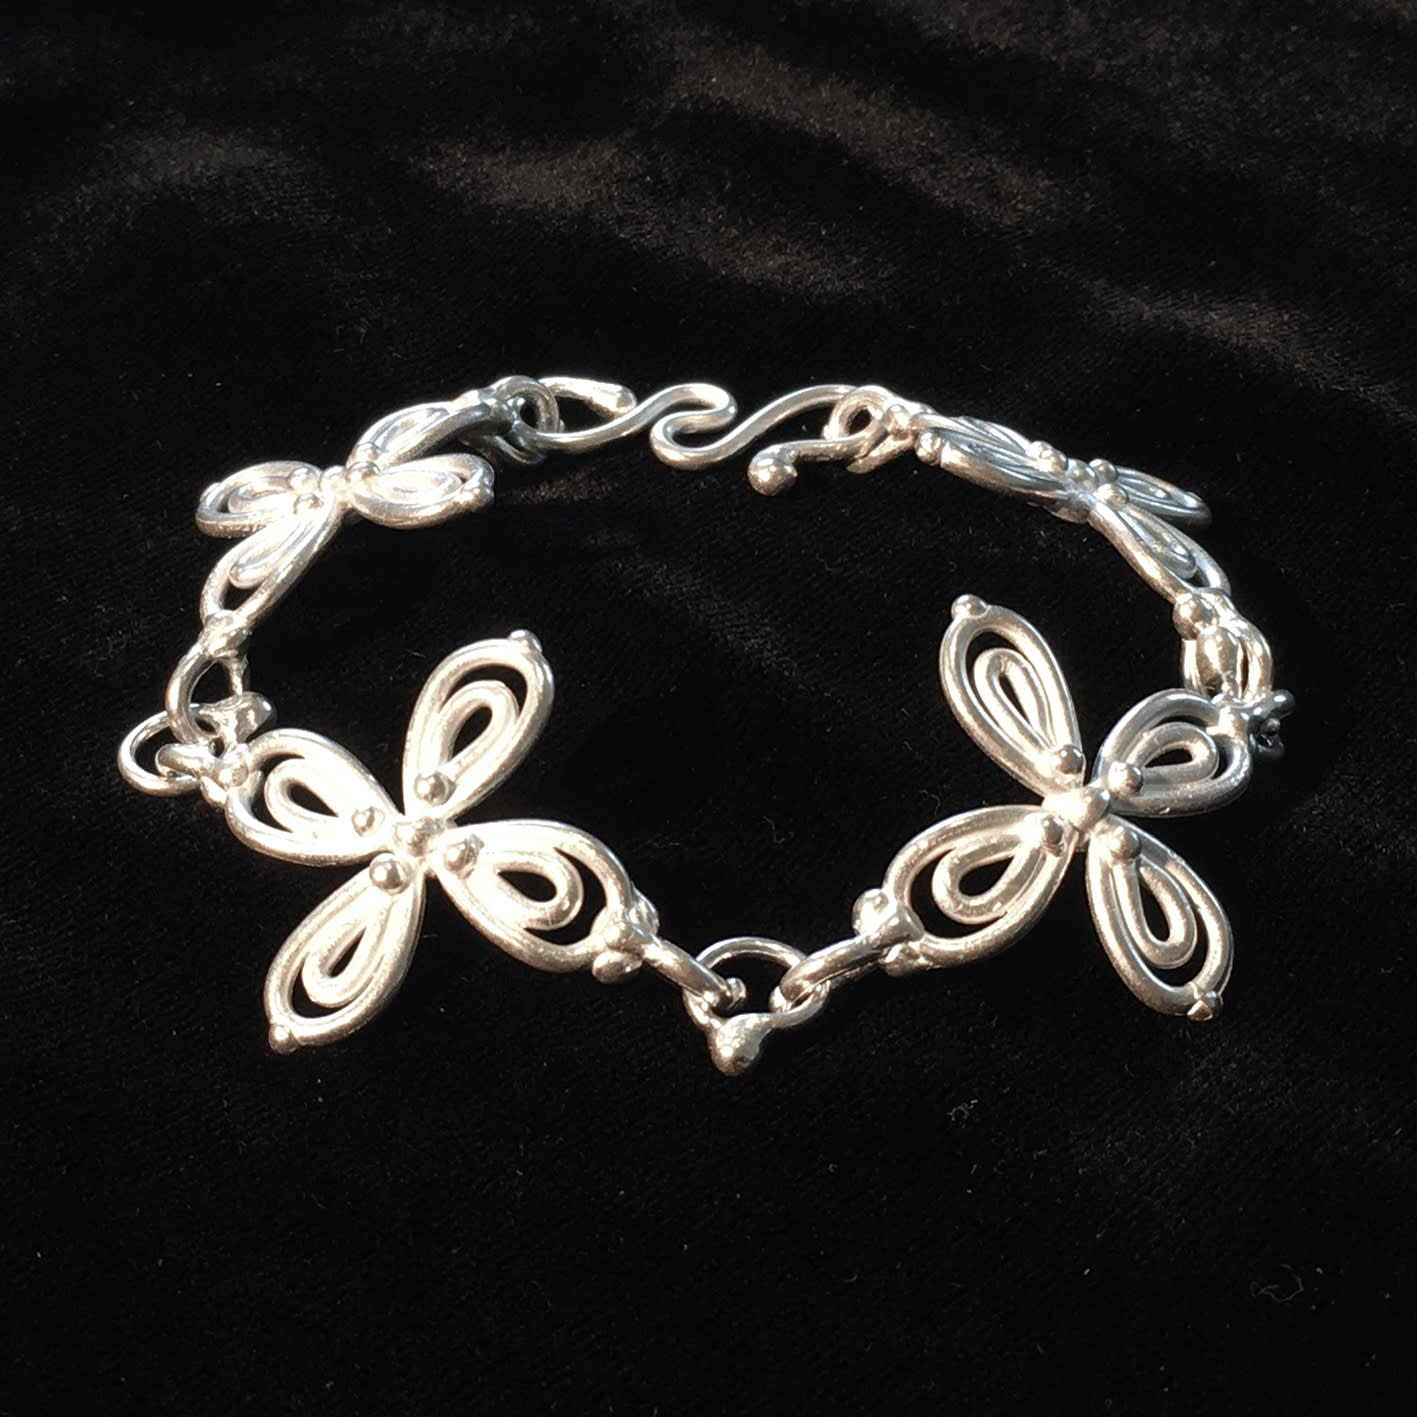 "<span class=""link fancybox-details-link""><a href=""/artists/186-helen-feiler/works/6750-helen-feiler-silver-flower-bracelet-2019/"">View Detail Page</a></span><div class=""artist""><strong>Helen Feiler</strong></div> <div class=""title""><em>Silver 'Flower' Bracelet</em>, 2019</div> <div class=""medium"">tumbled pure silver</div><div class=""price"">£264.00</div><div class=""copyright_line"">Own Art: £26.40 x 10 monthly payments</div>"